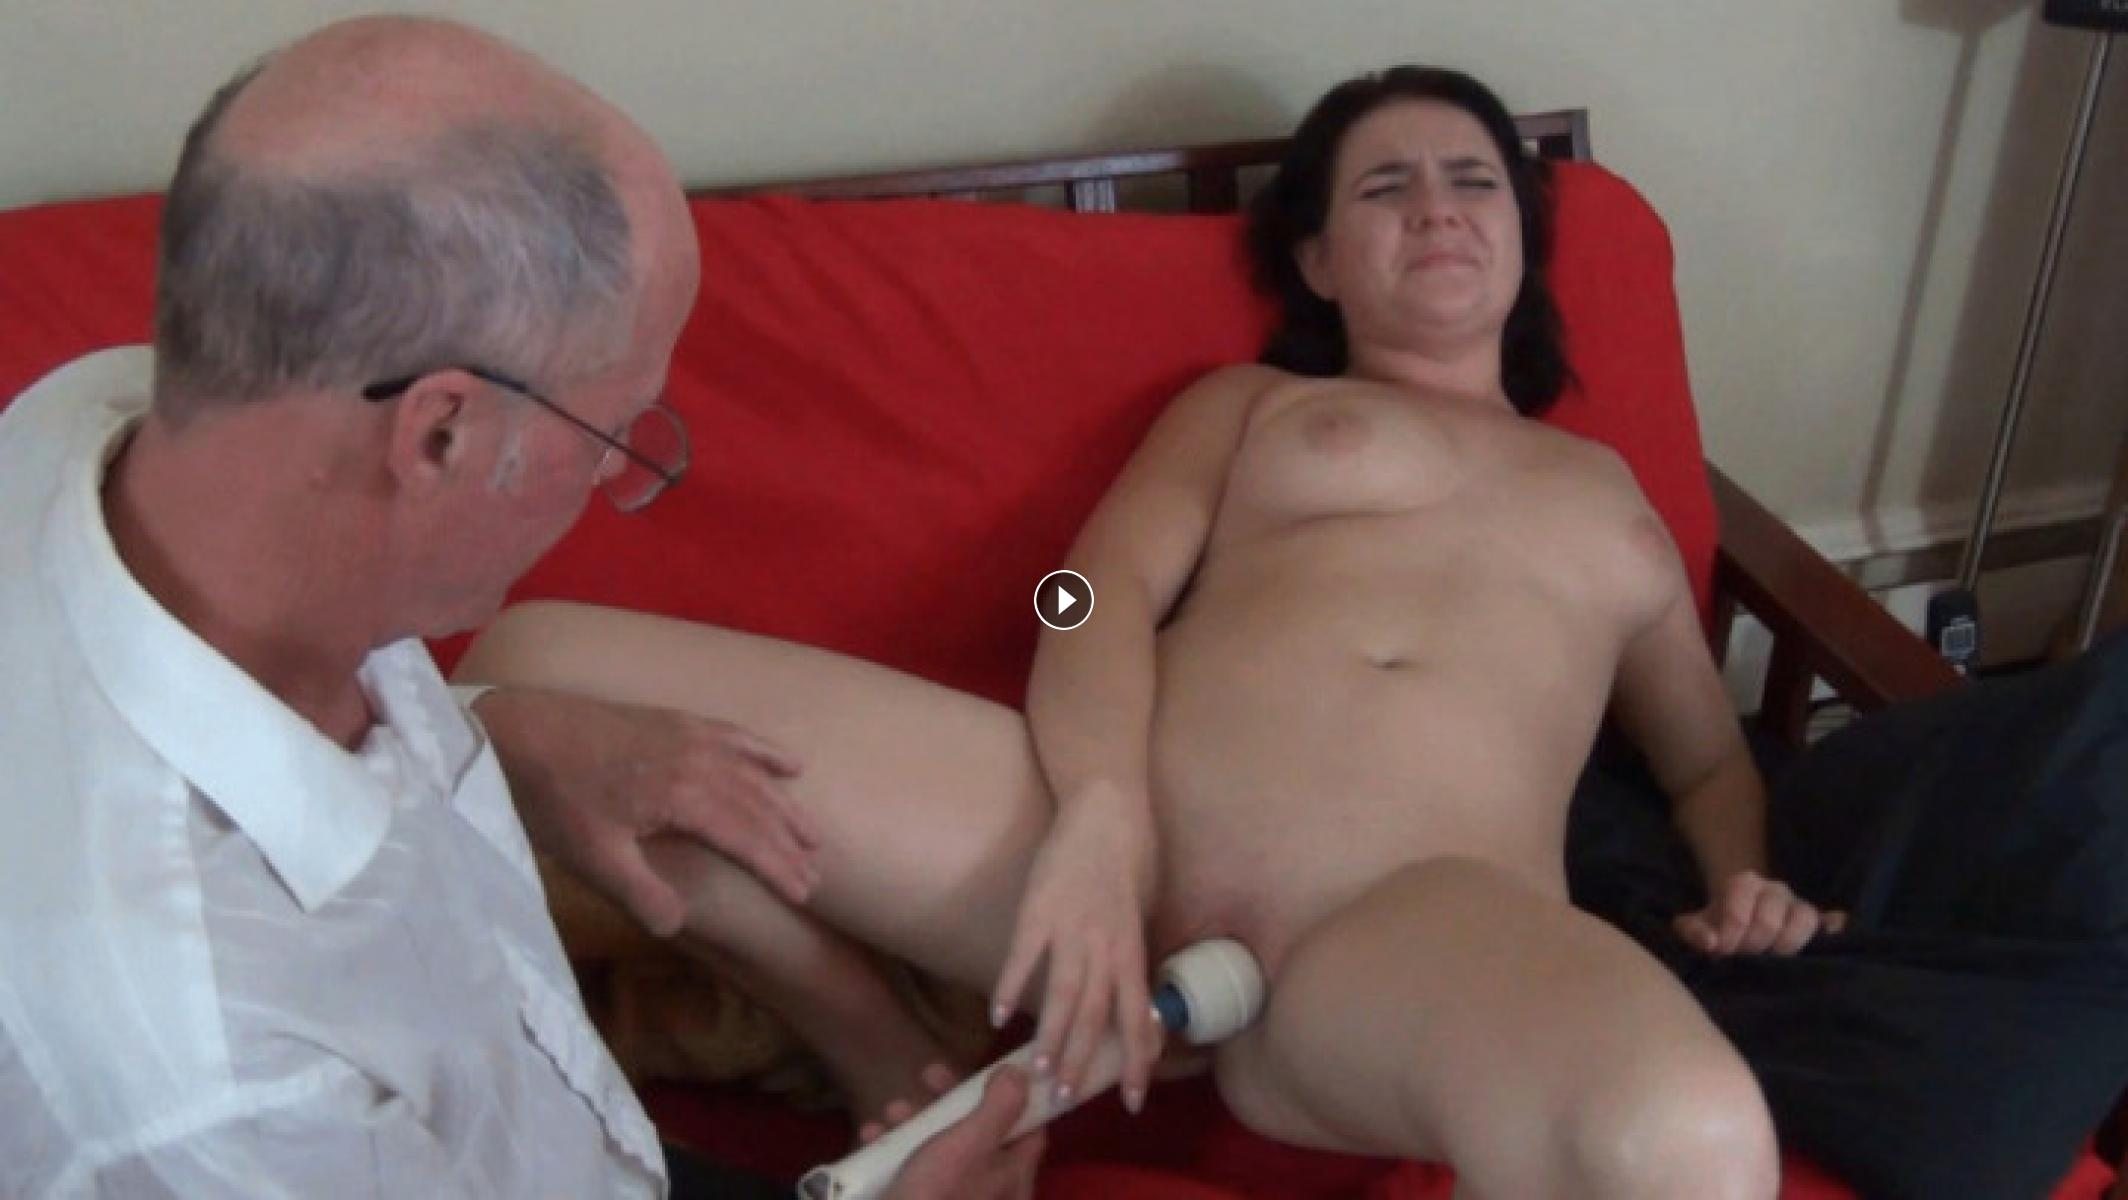 Grandpa rips panties off granddaughter, alicia and ashley cum twins